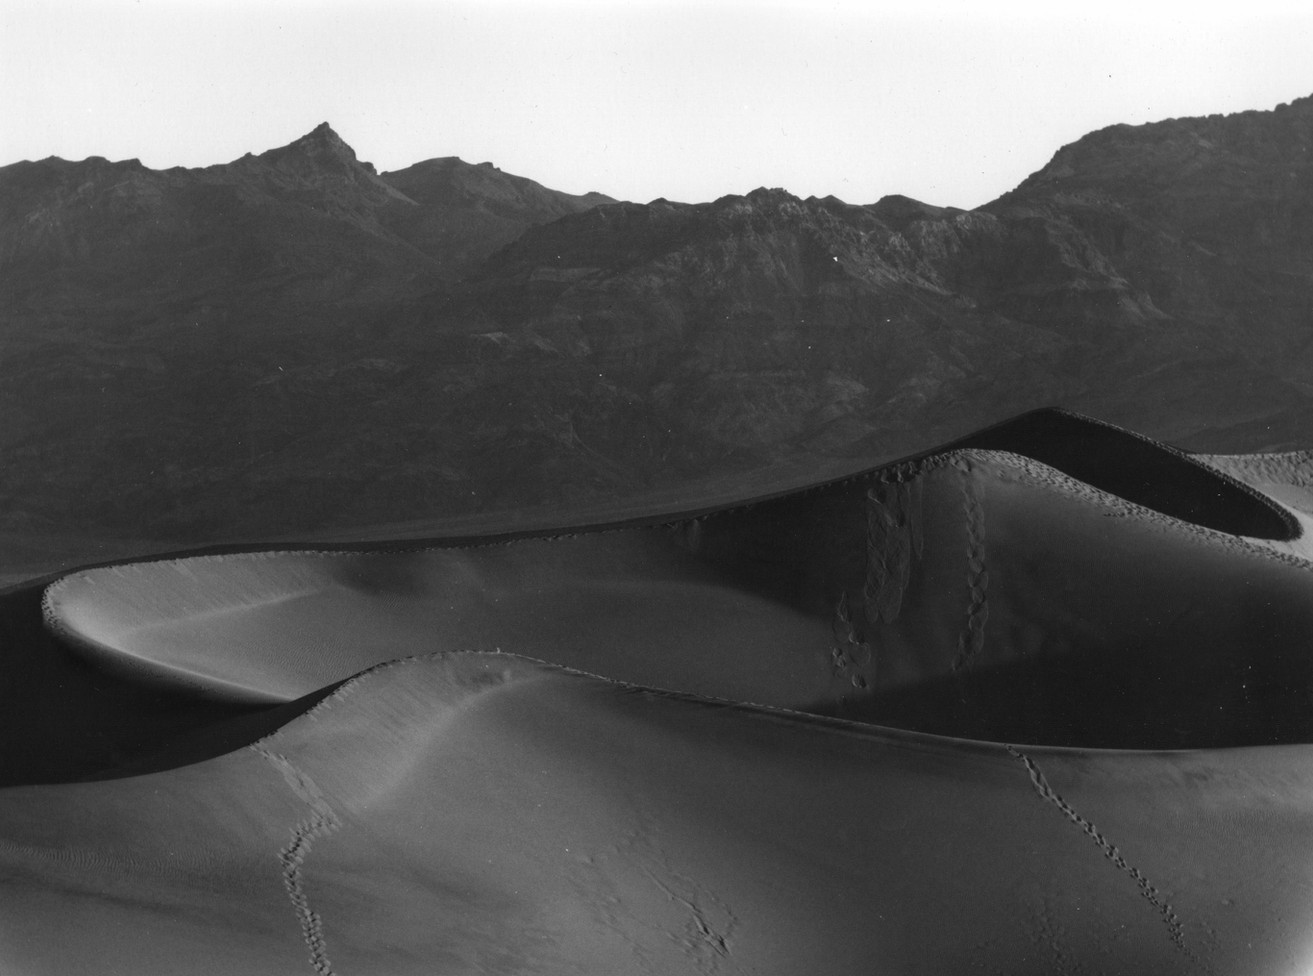 Sand Dunes at Stovepipe Wells, Death Valley